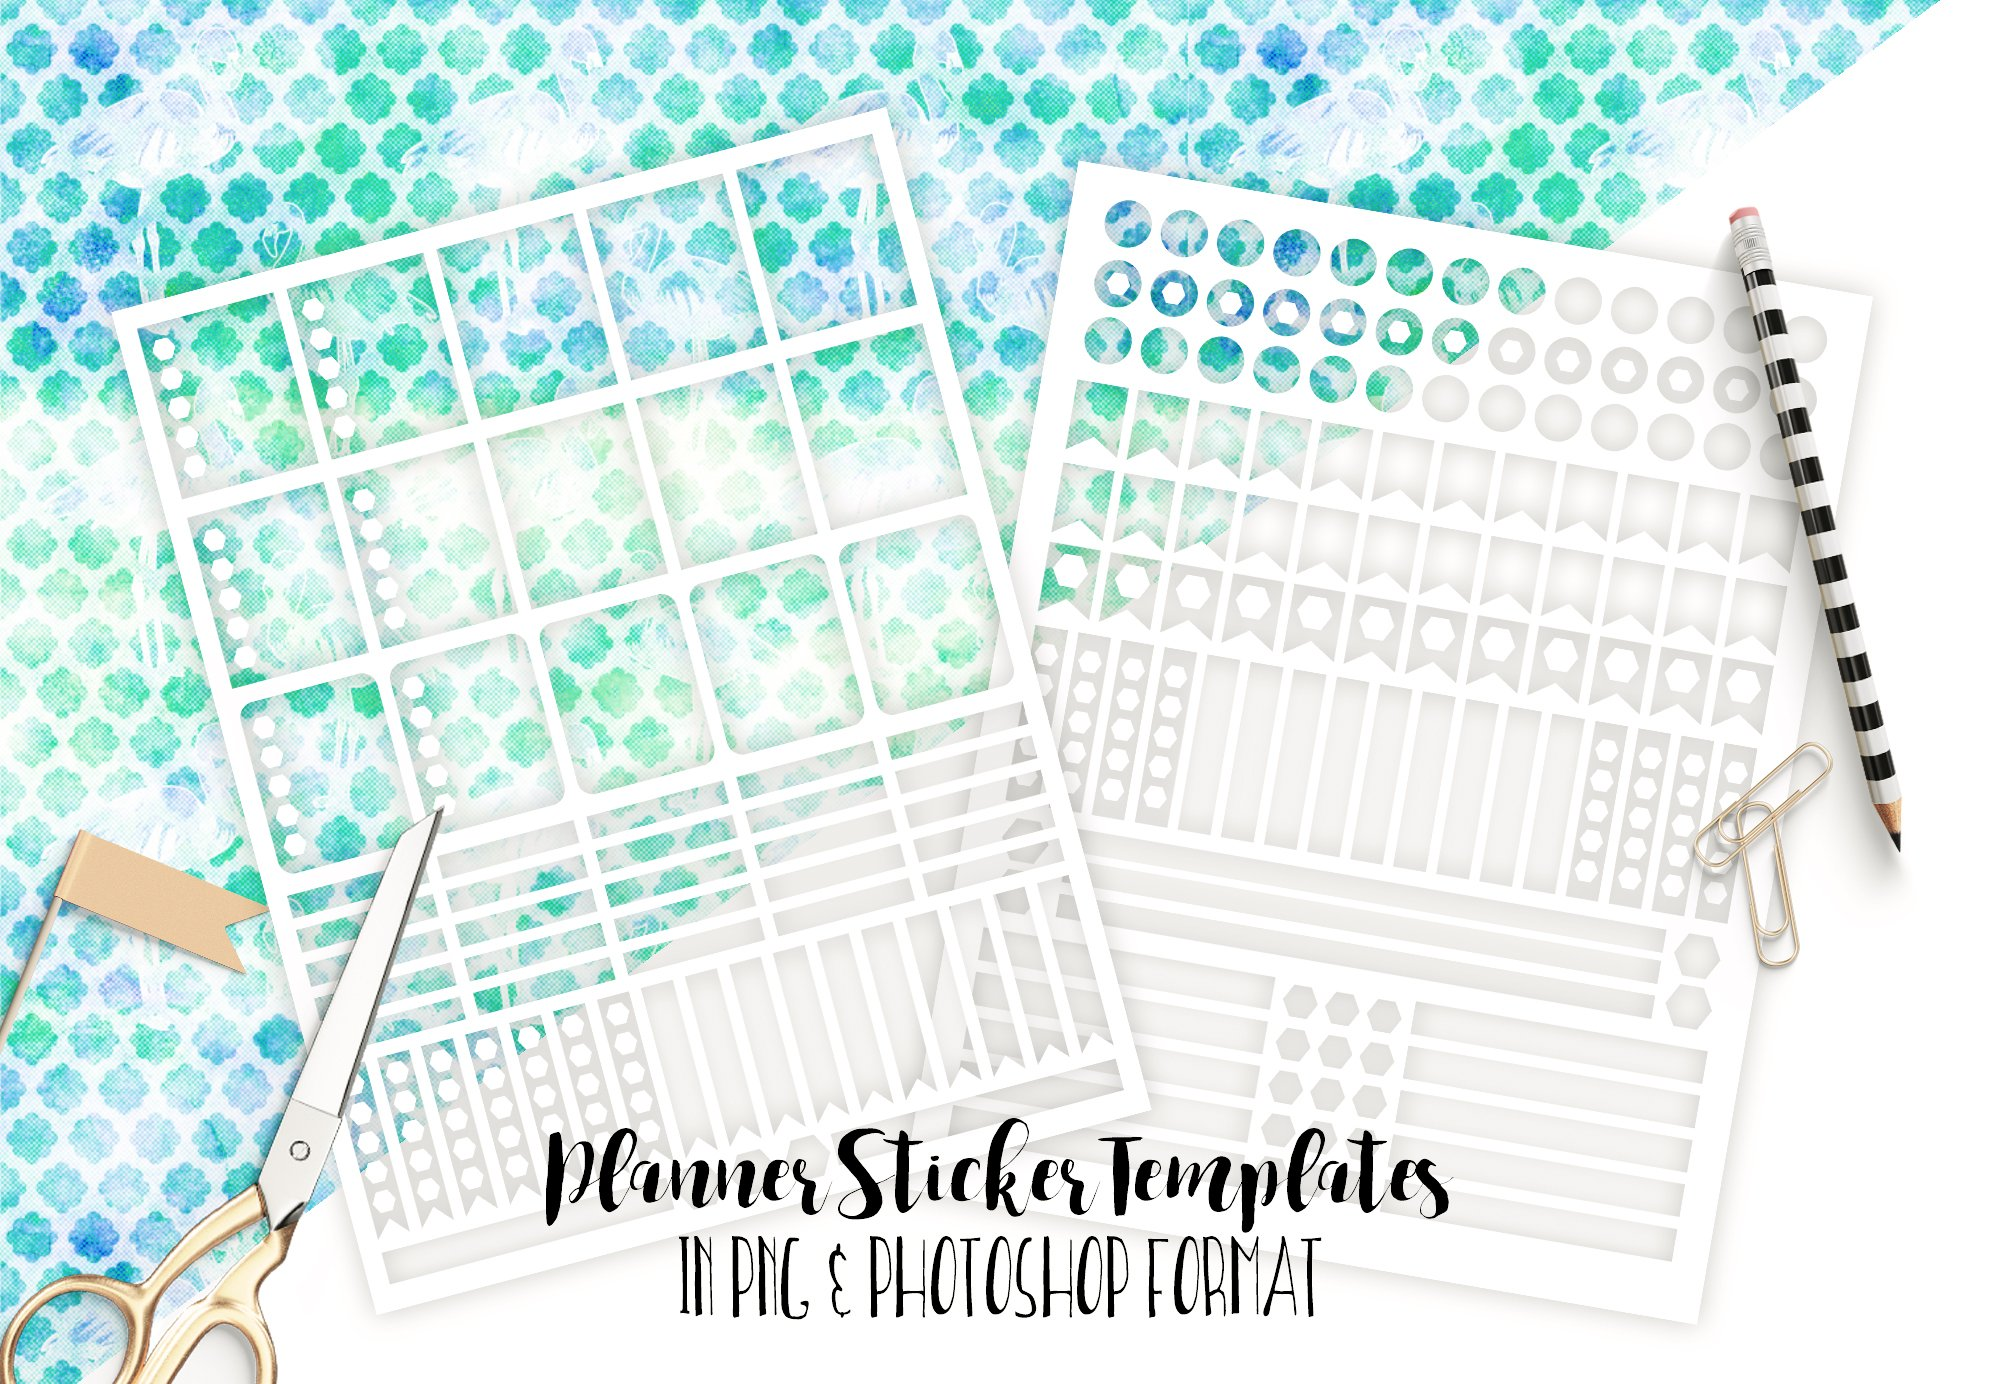 Planner Sticker Templates Photoshop Stationery Templates - Sticker layout template